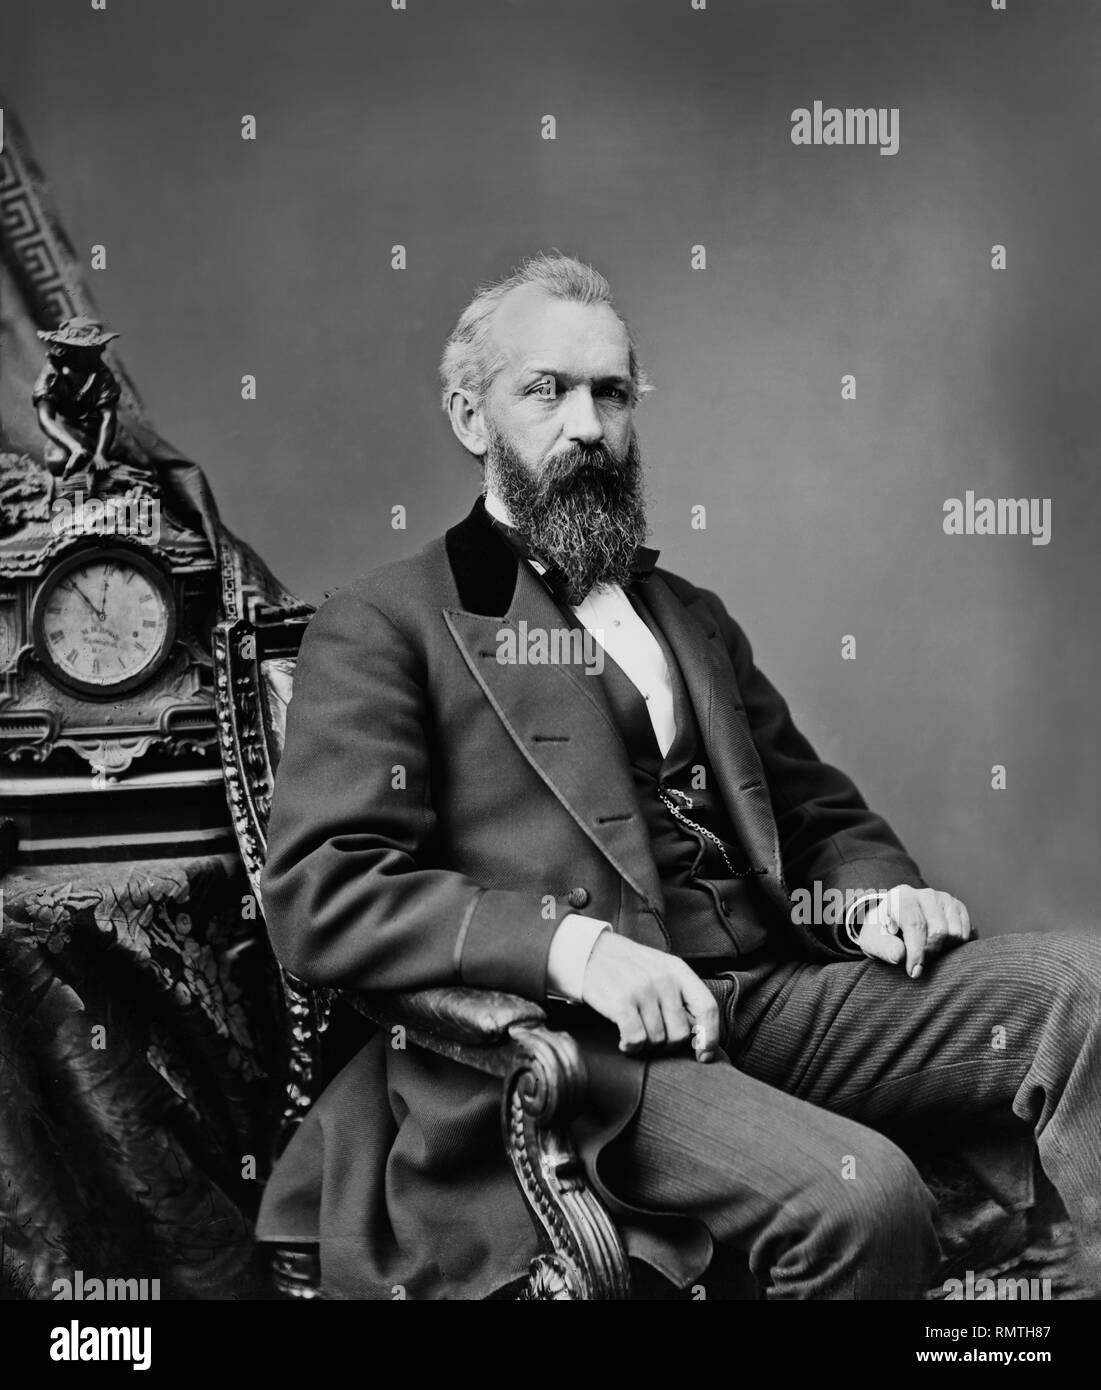 James M. Pendleton (1822-89), Member of U.S. House of Representatives from Rhode Island, Seated Portrait, Brady-Handy Photograph Collection, early 1870's - Stock Image